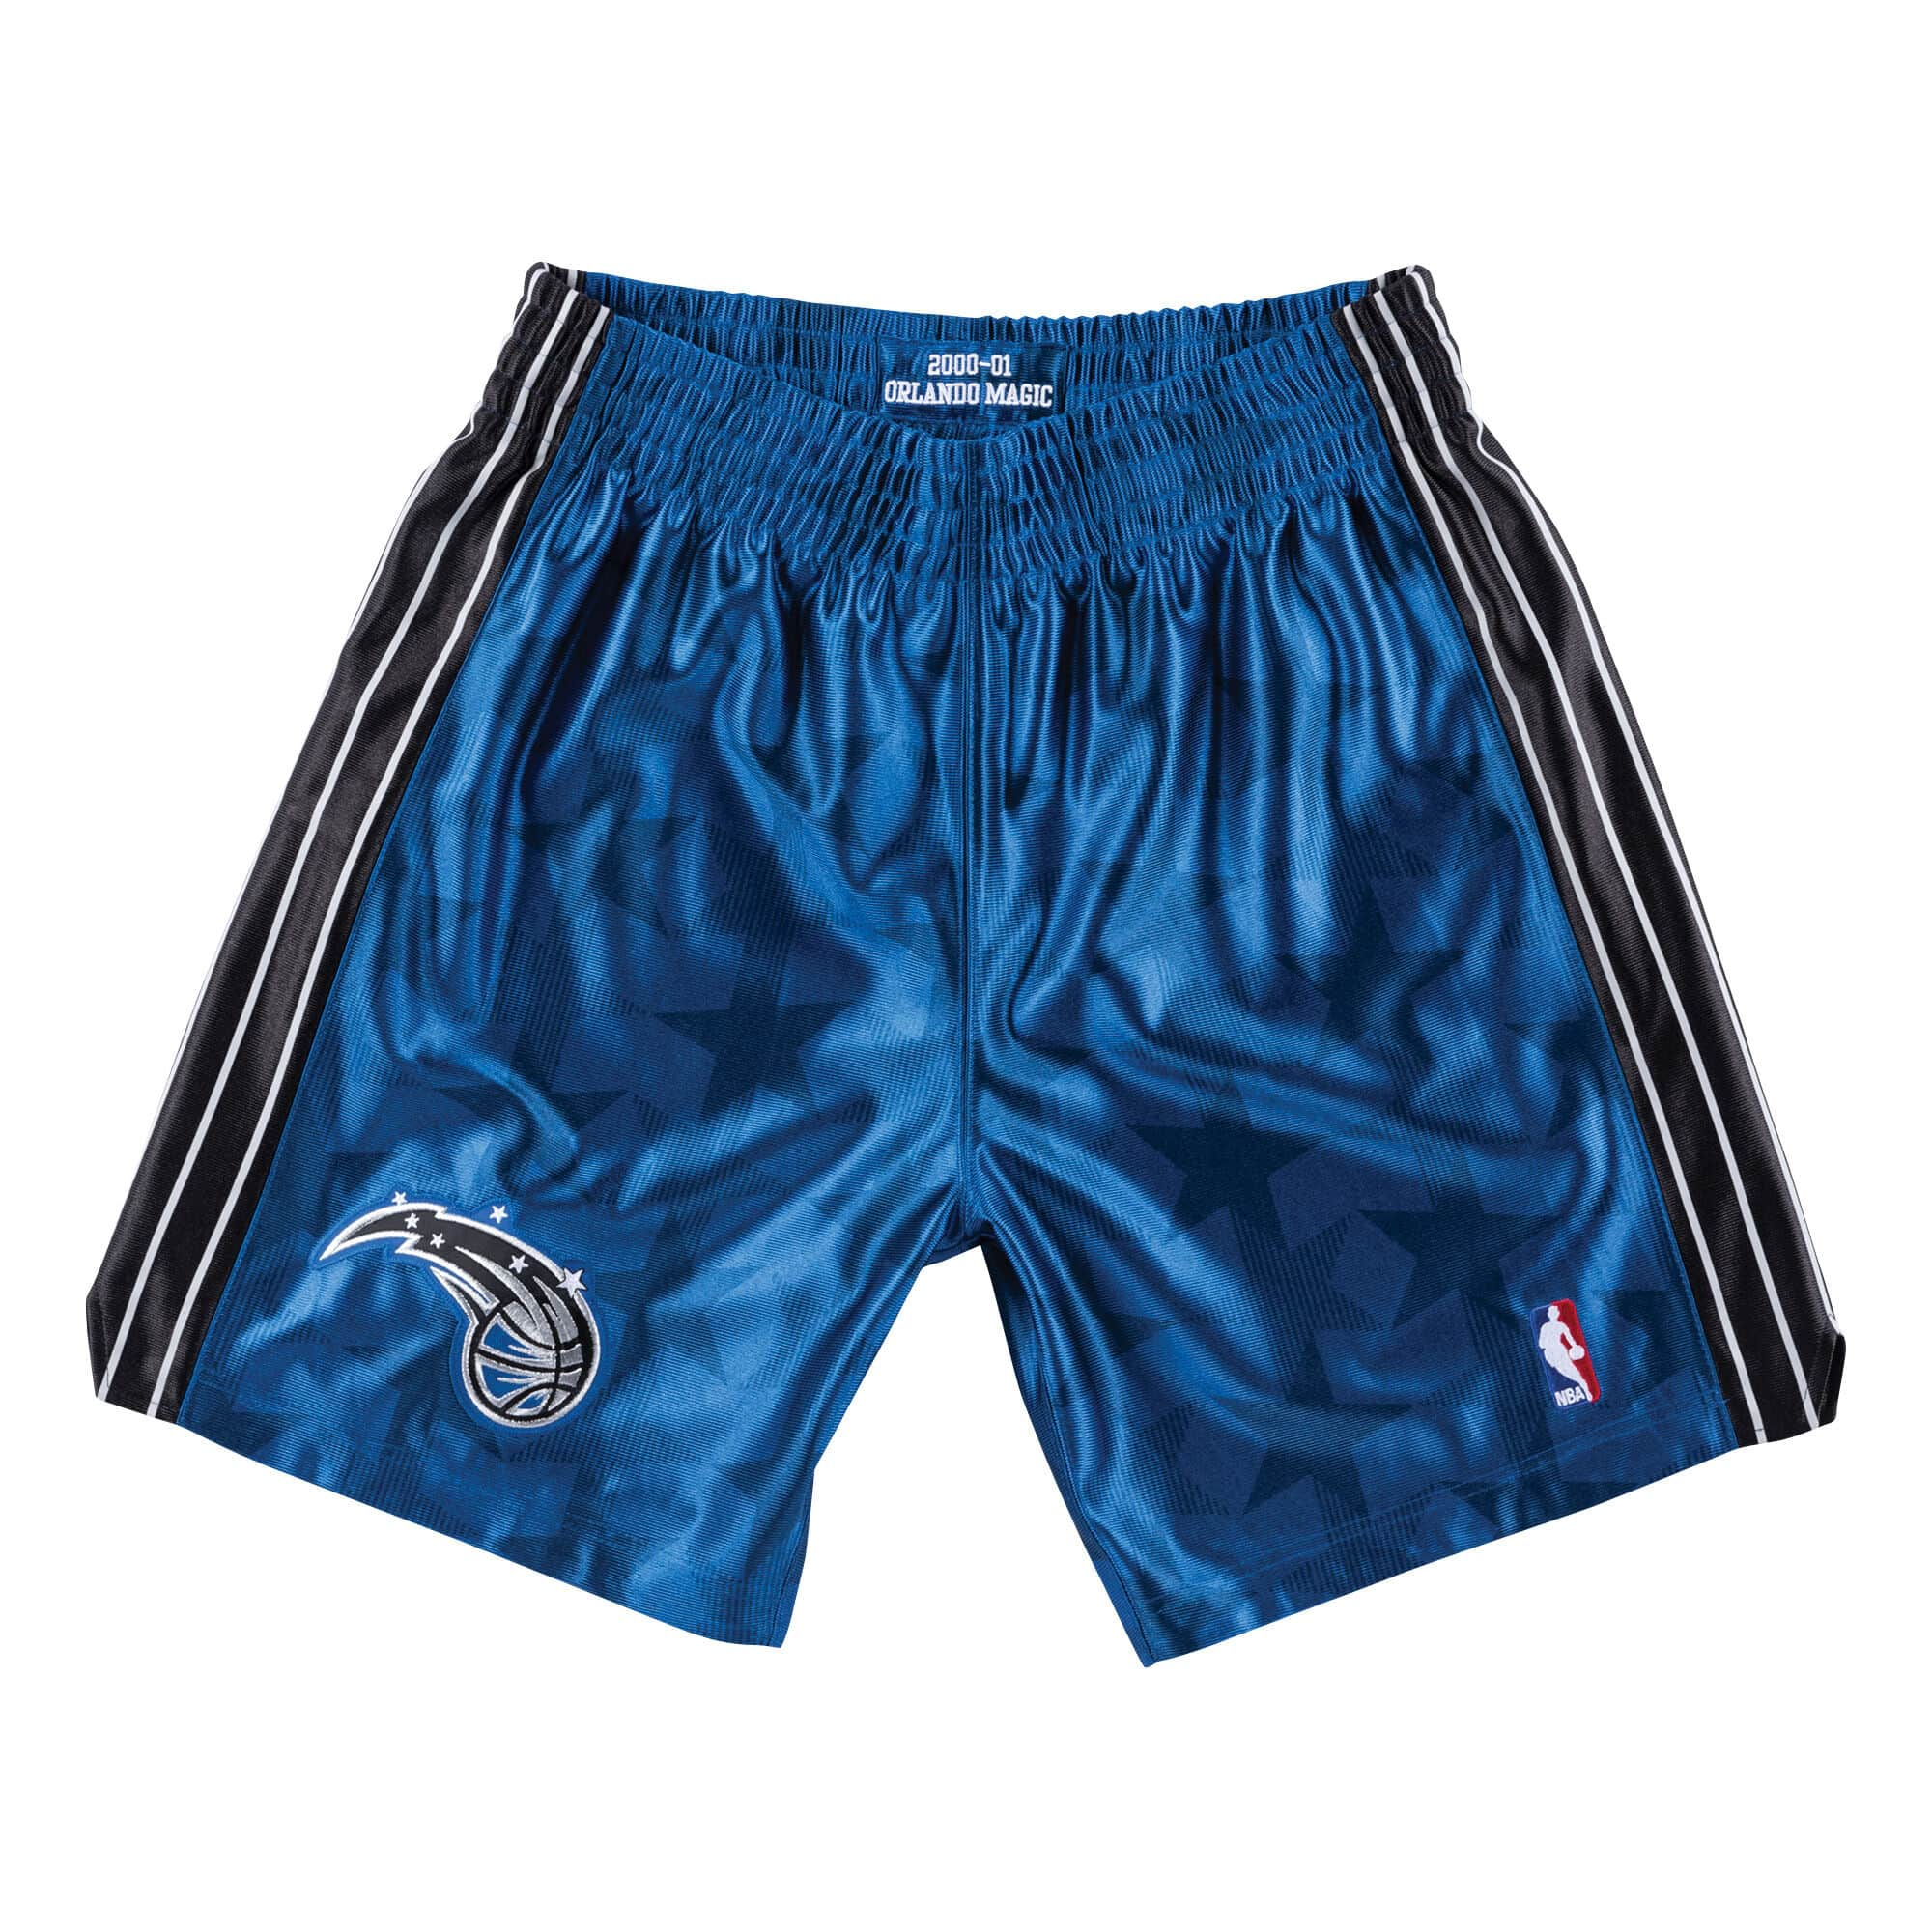 Authentic Shorts Orlando Magic Road 2000-01